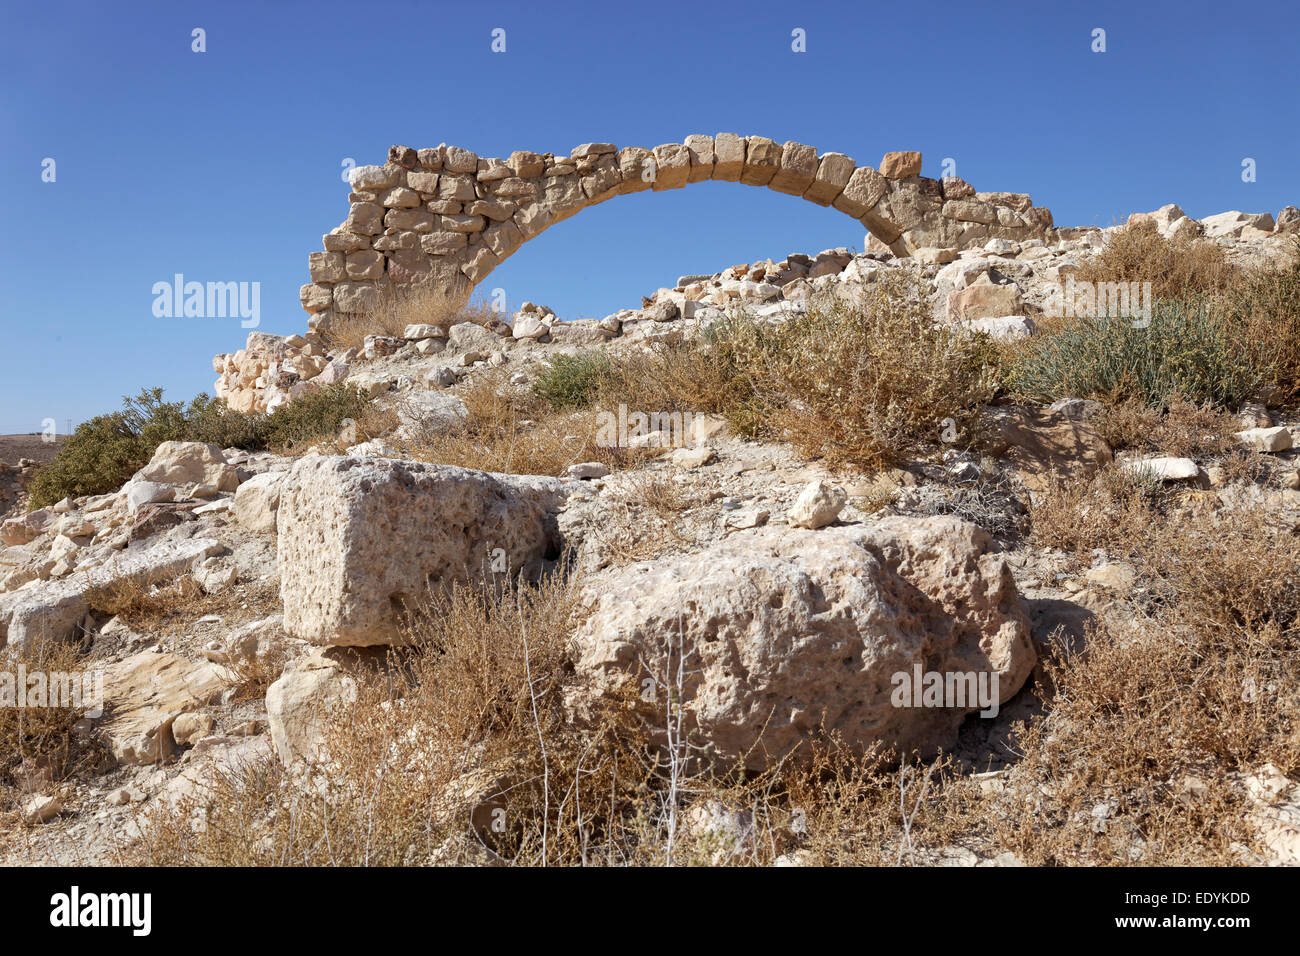 Rubble stones, archway, Montreal Crusader castle, also Mons Regalis, Shoubak or Shawbak, fortress, hill castle, - Stock Image